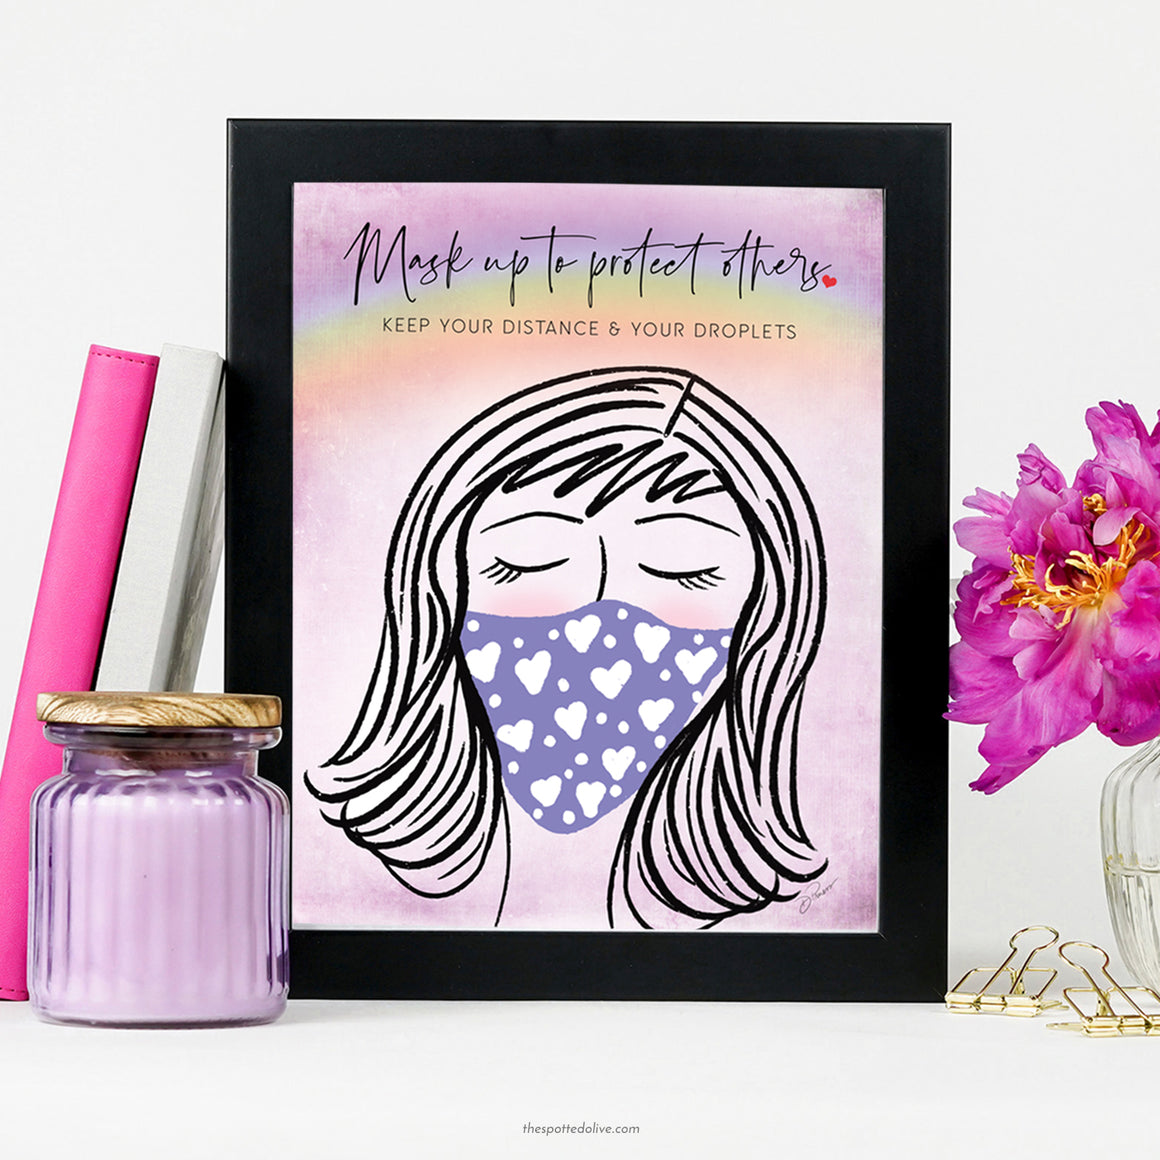 Mask Up Printable Art Shop Sign by The Spotted Olive - Scene